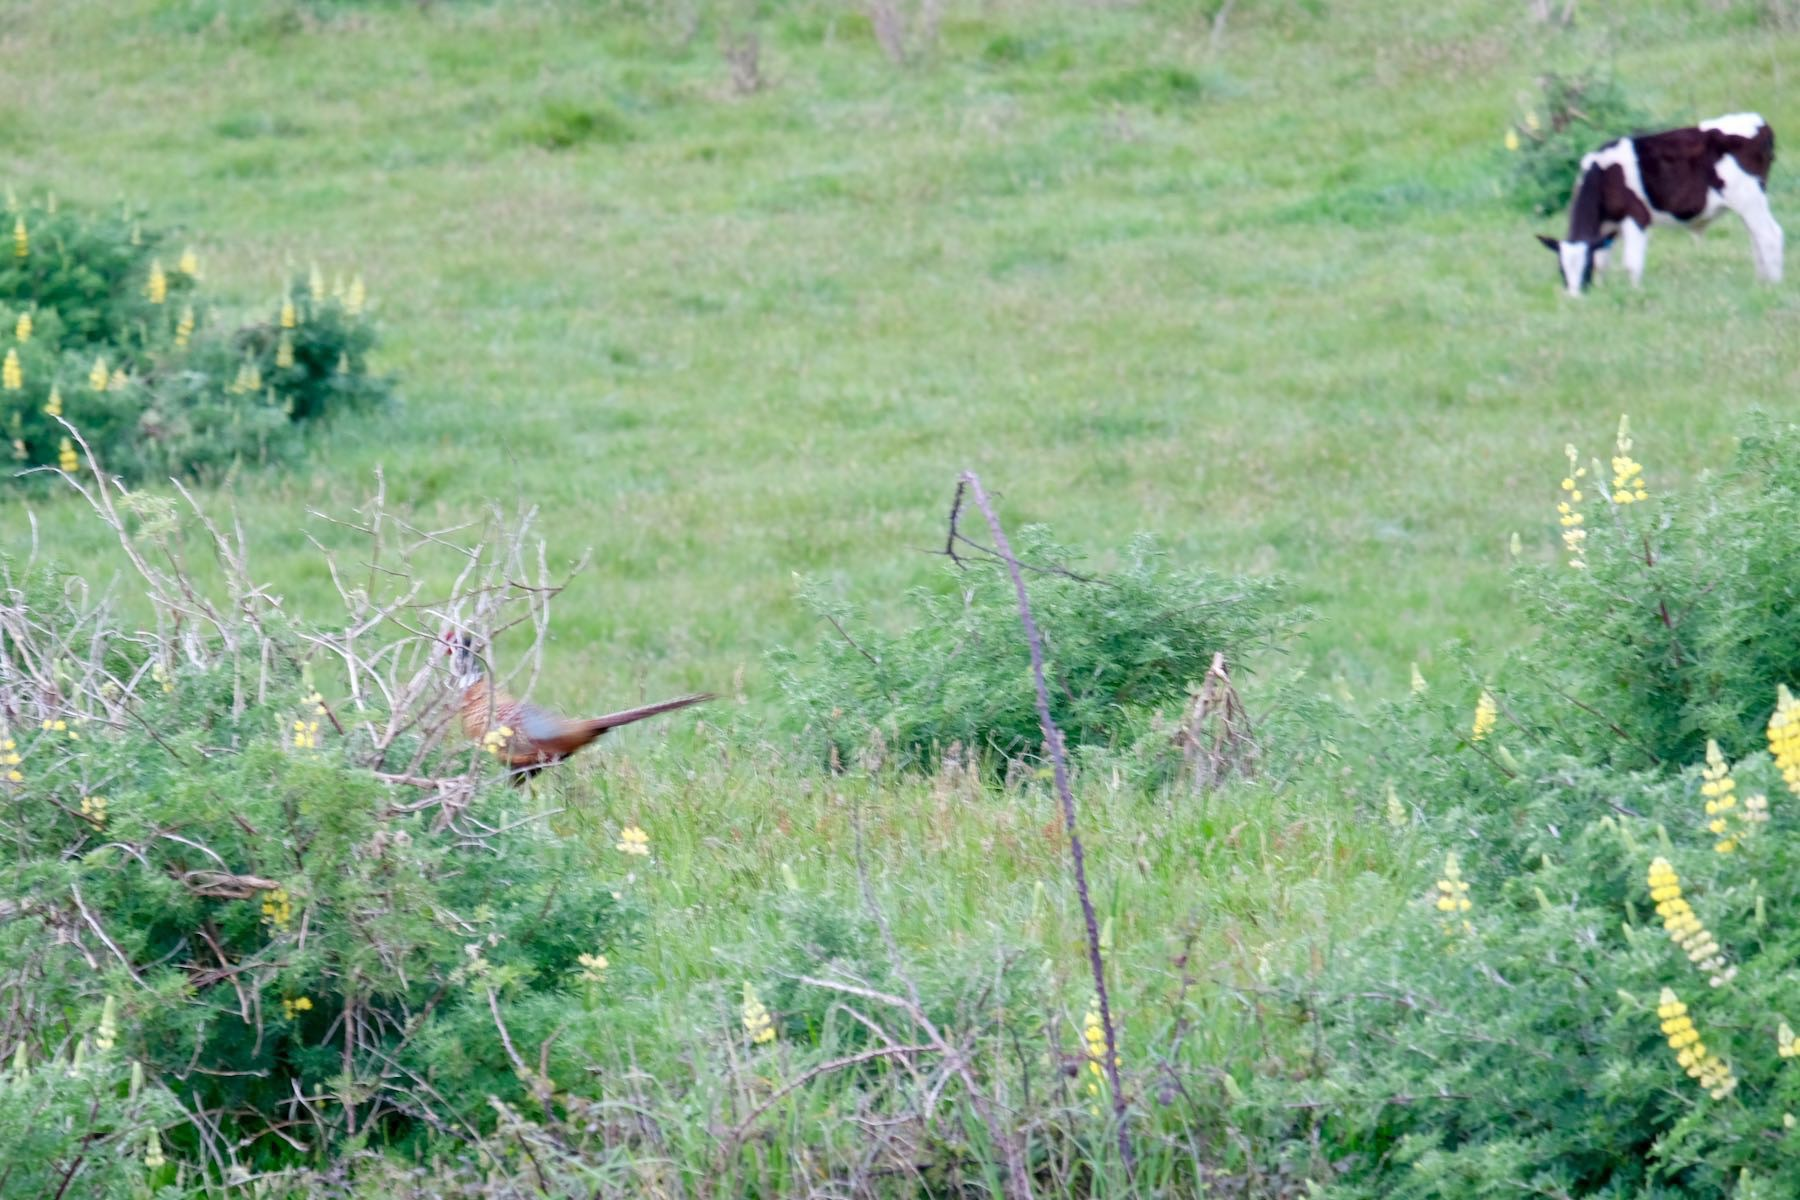 Pheasant partly obscured by a bush.